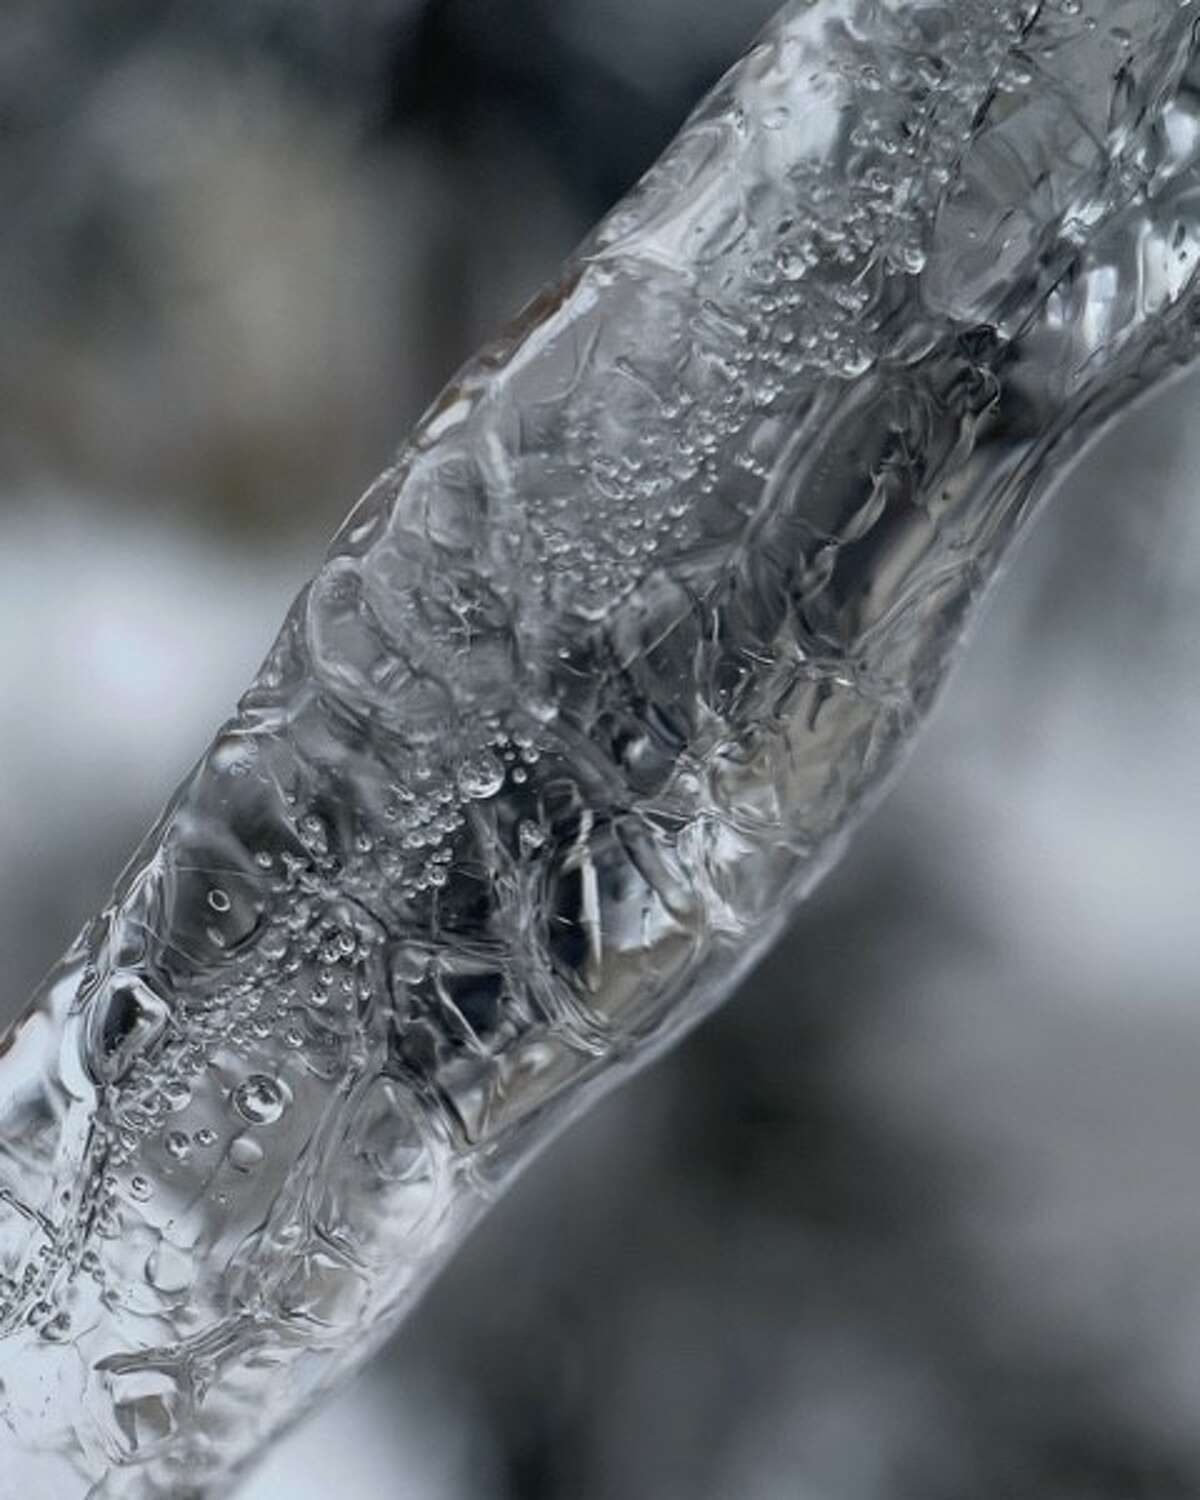 Sean Walmsley of Saratoga Springs took this photo of a juniper branch in his garden that was encapsulated with ice the night before. You can just see the branch as a dark shadow under the ice covering. After taking it, he realized it looked like an ice leg.